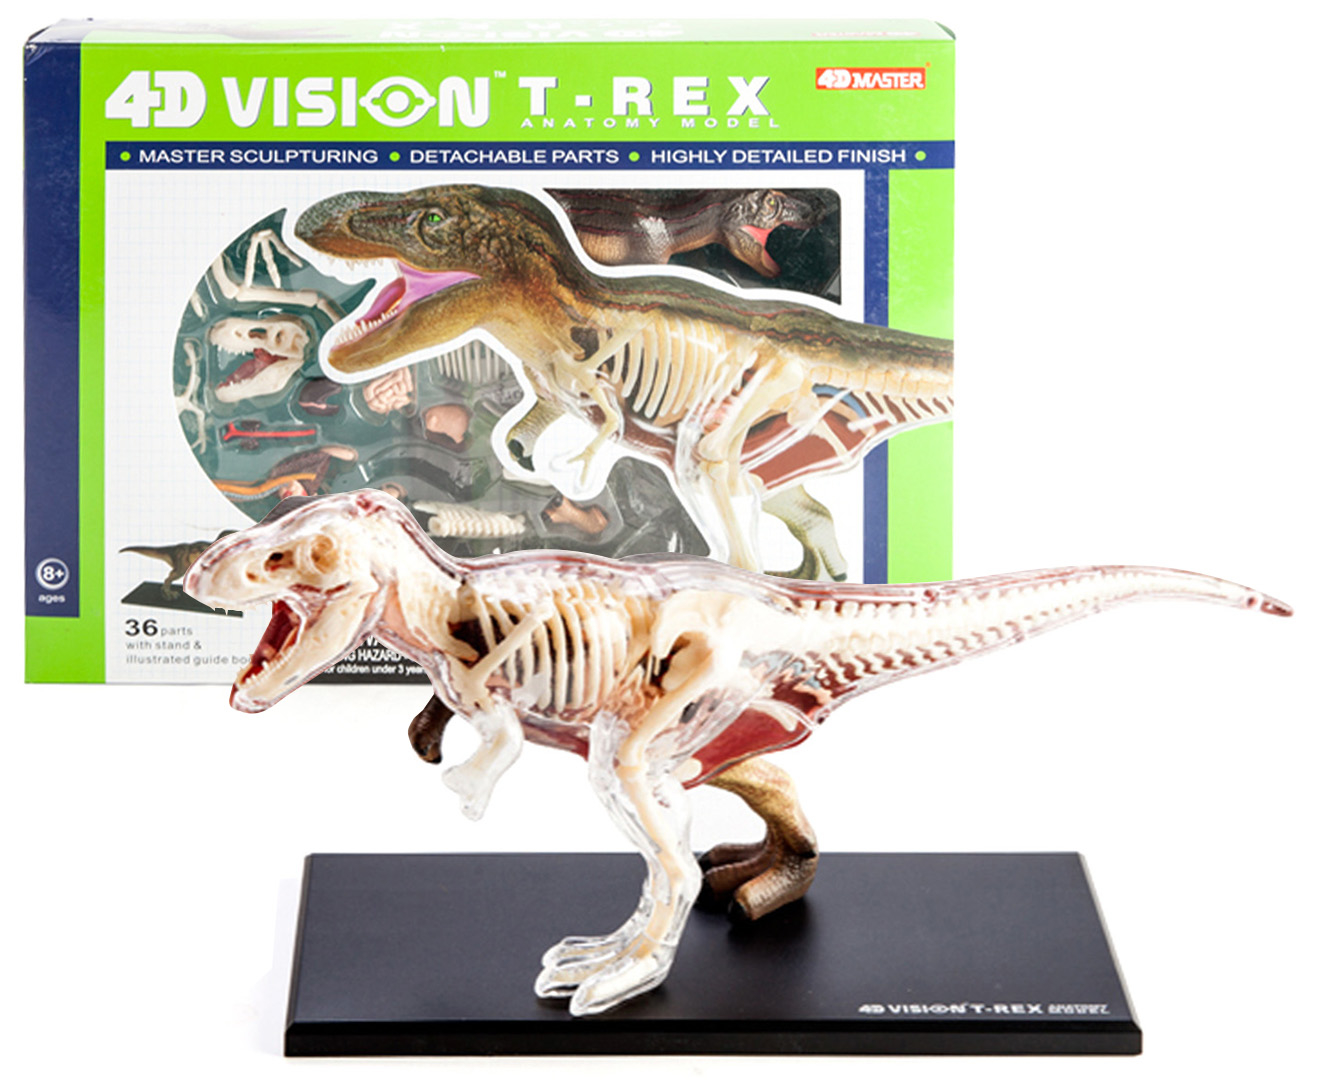 4d Vision T Rex Anatomy Model 9318051113442 Ebay